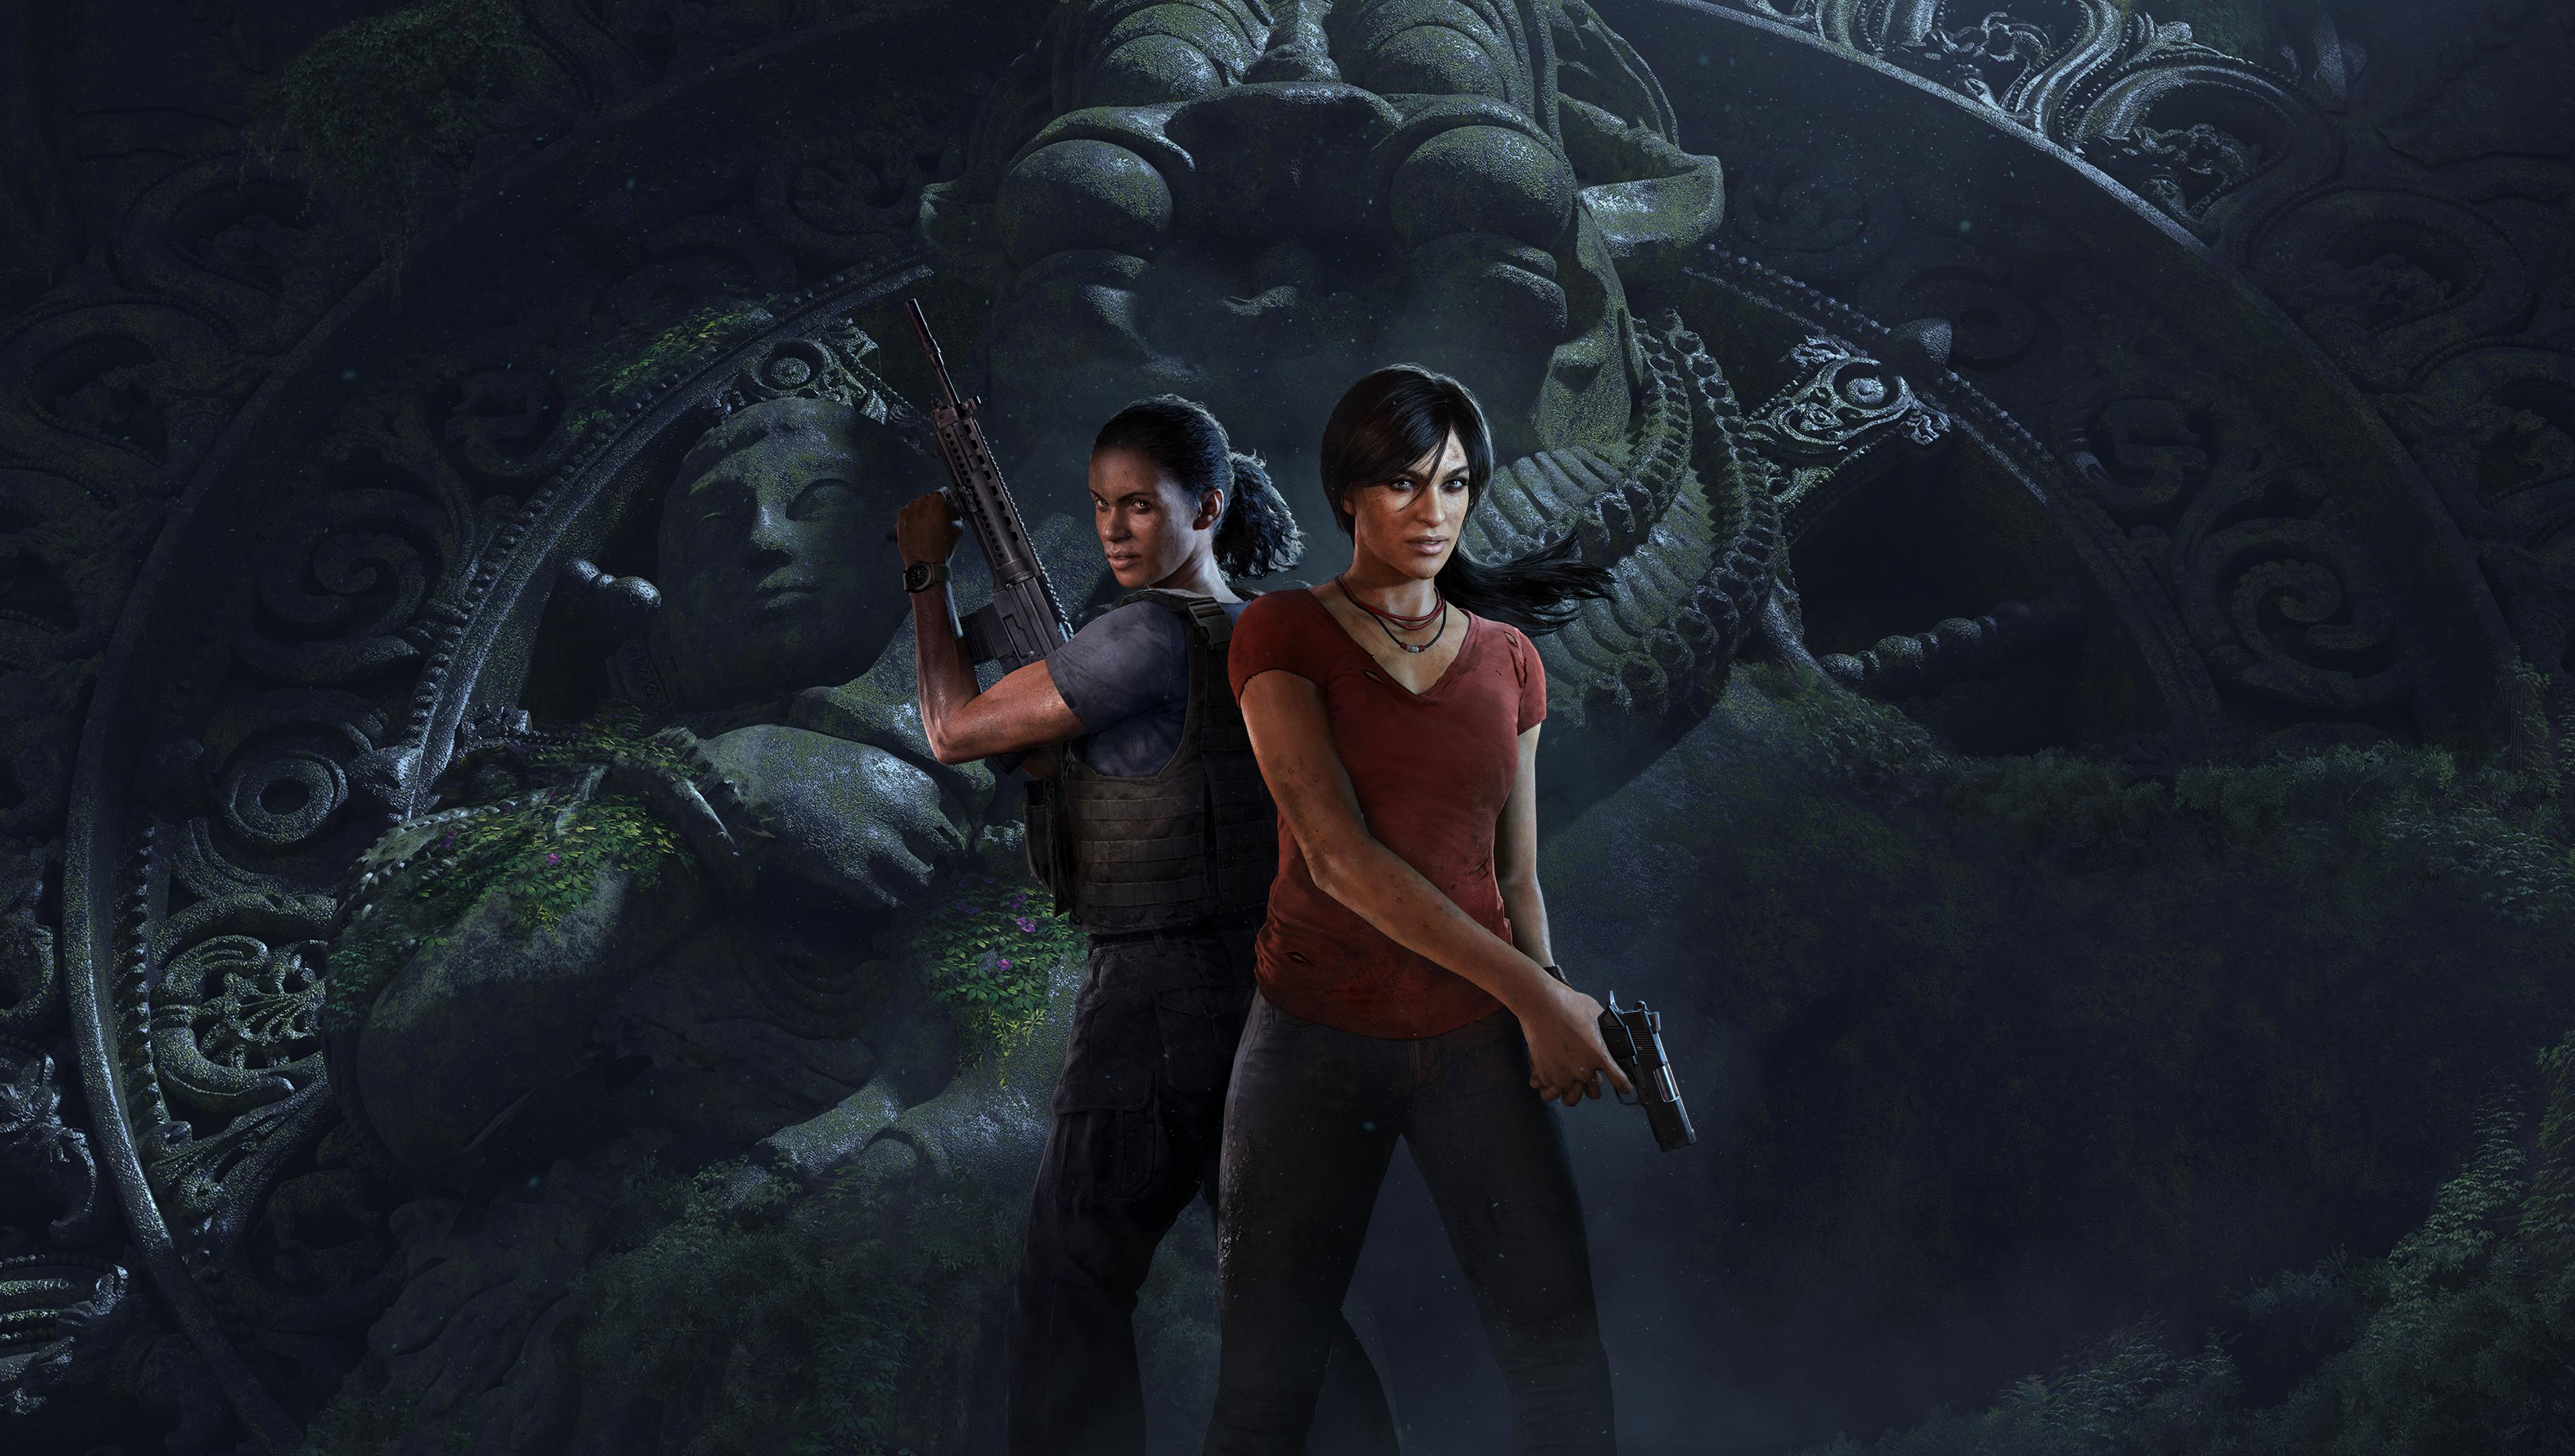 Uncharted the lost legacy hd wallpaper background image 3820x2160 id 866595 wallpaper abyss - Legacy wallpaper ...